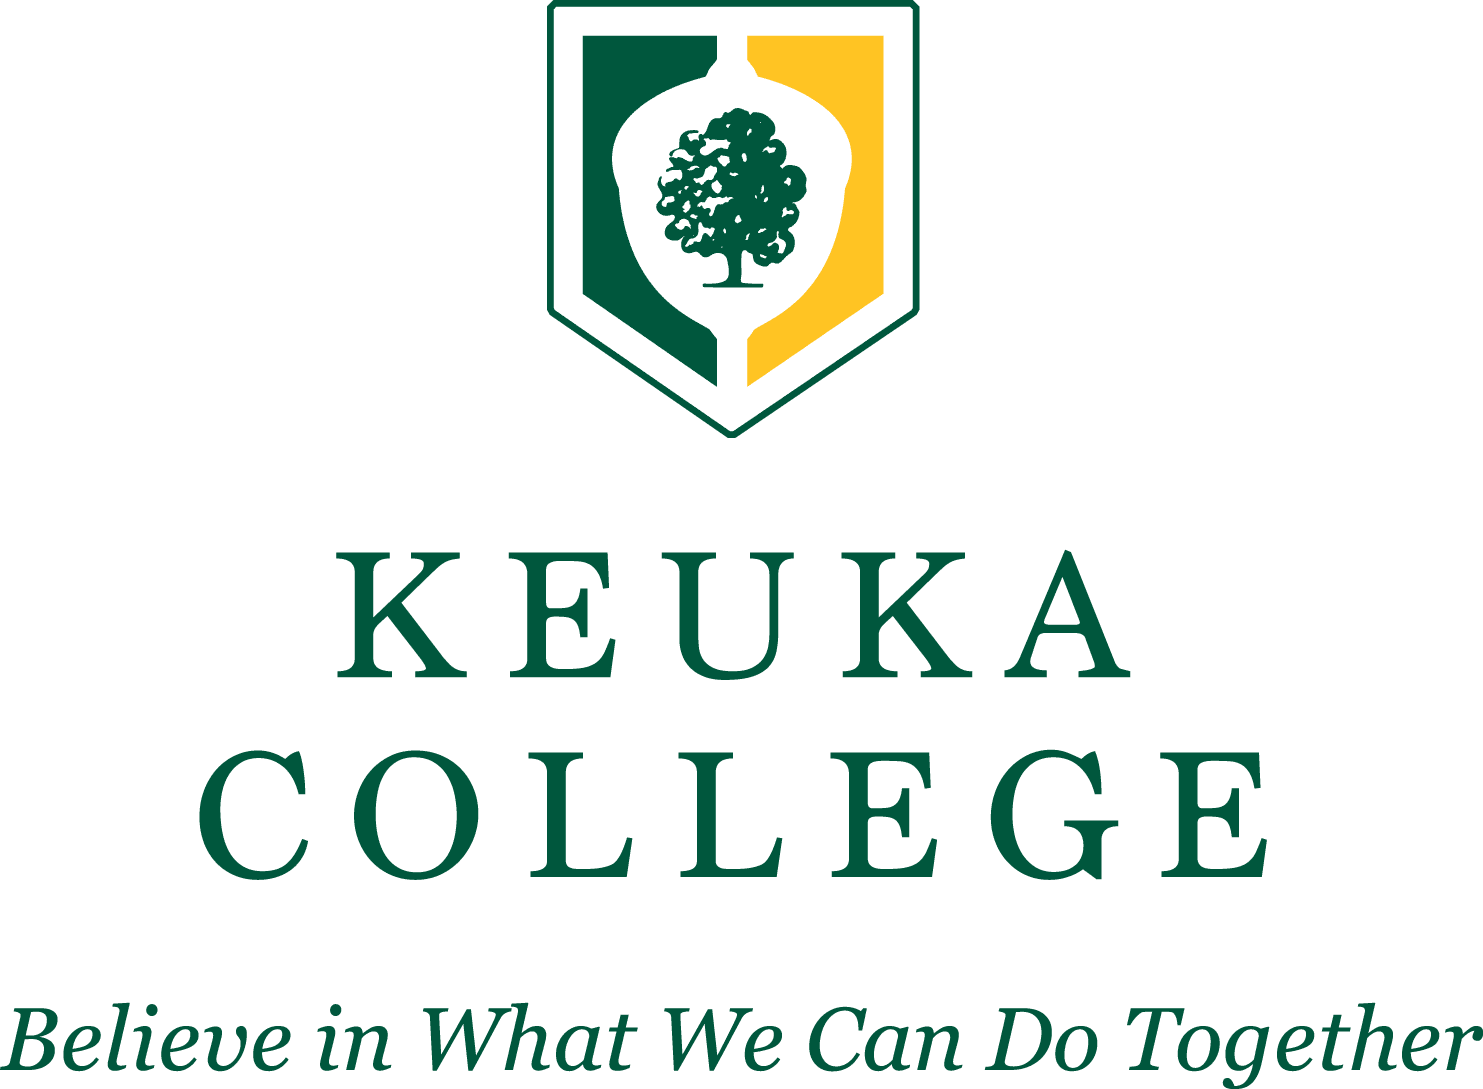 Keuka College - Believe in What We Can Do Together